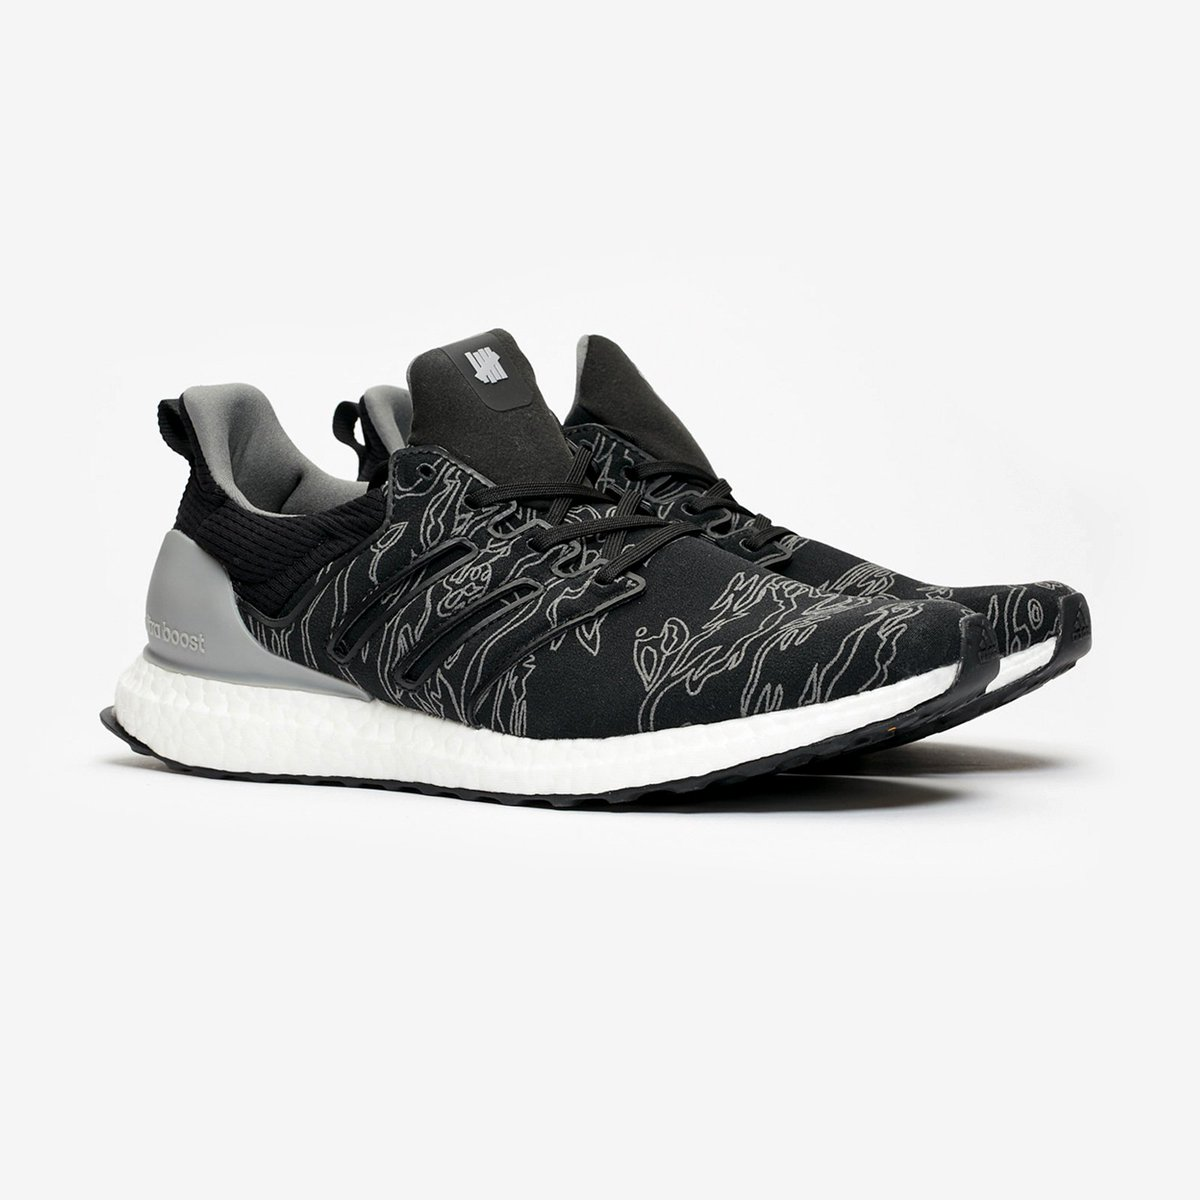 sports shoes c1358 a5200  UNDEFEATEDinc x adidas Ultra Boost. Retail  220. Now  109. —   http   bit.ly 2HfCZ95  adpic.twitter.com ADGFmdijJ4